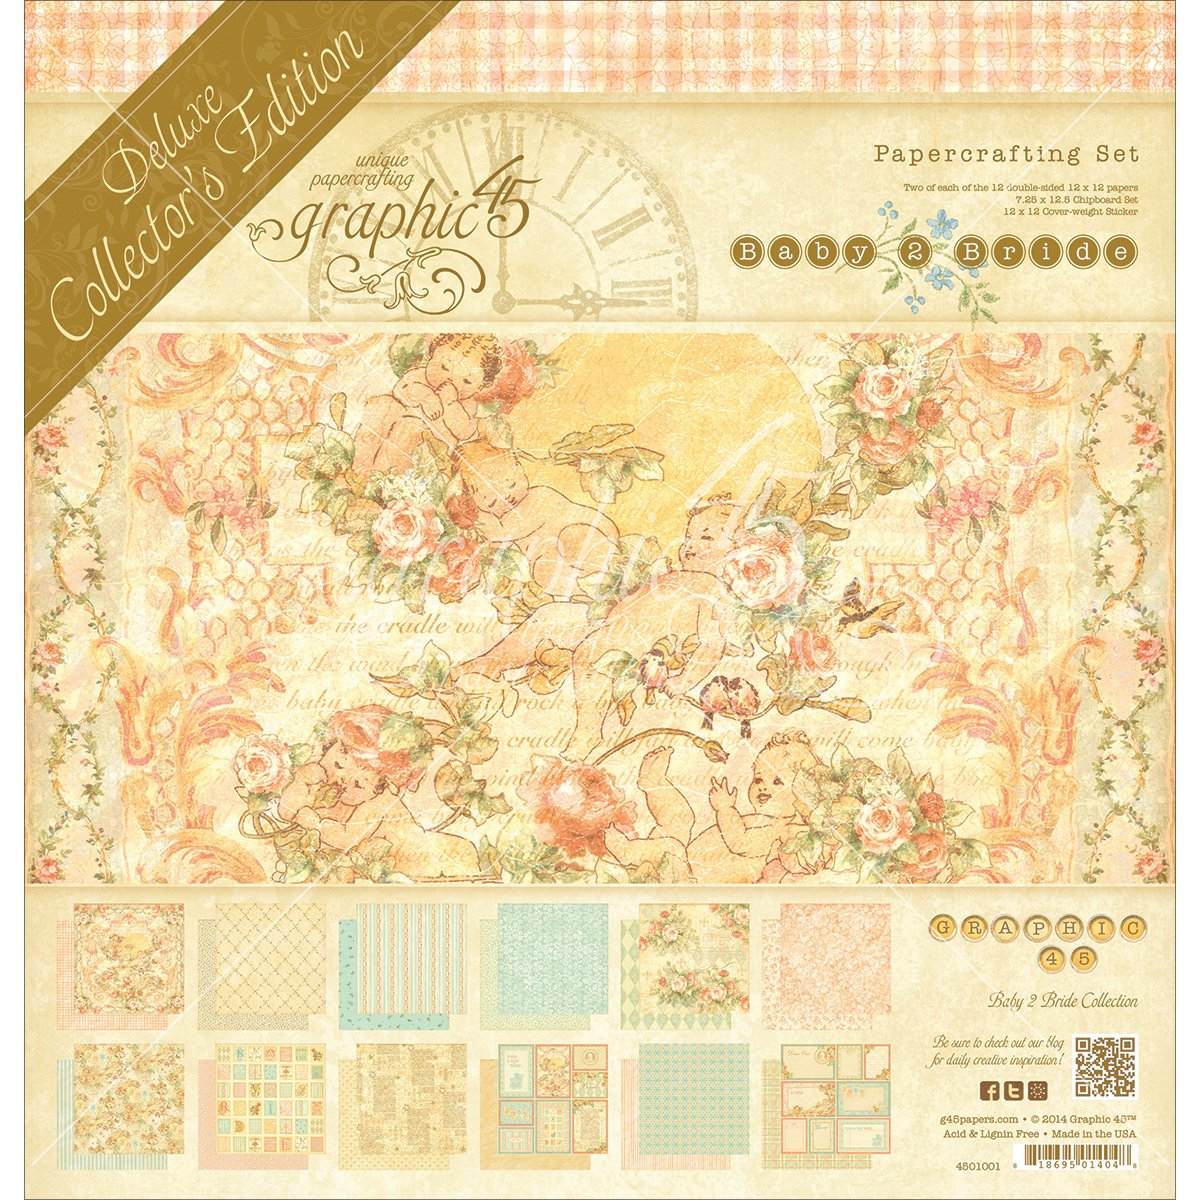 Graphic 45 Deluxe Collector's Edition Pack, 12x12-Inch, Baby 2 Bride 4501001